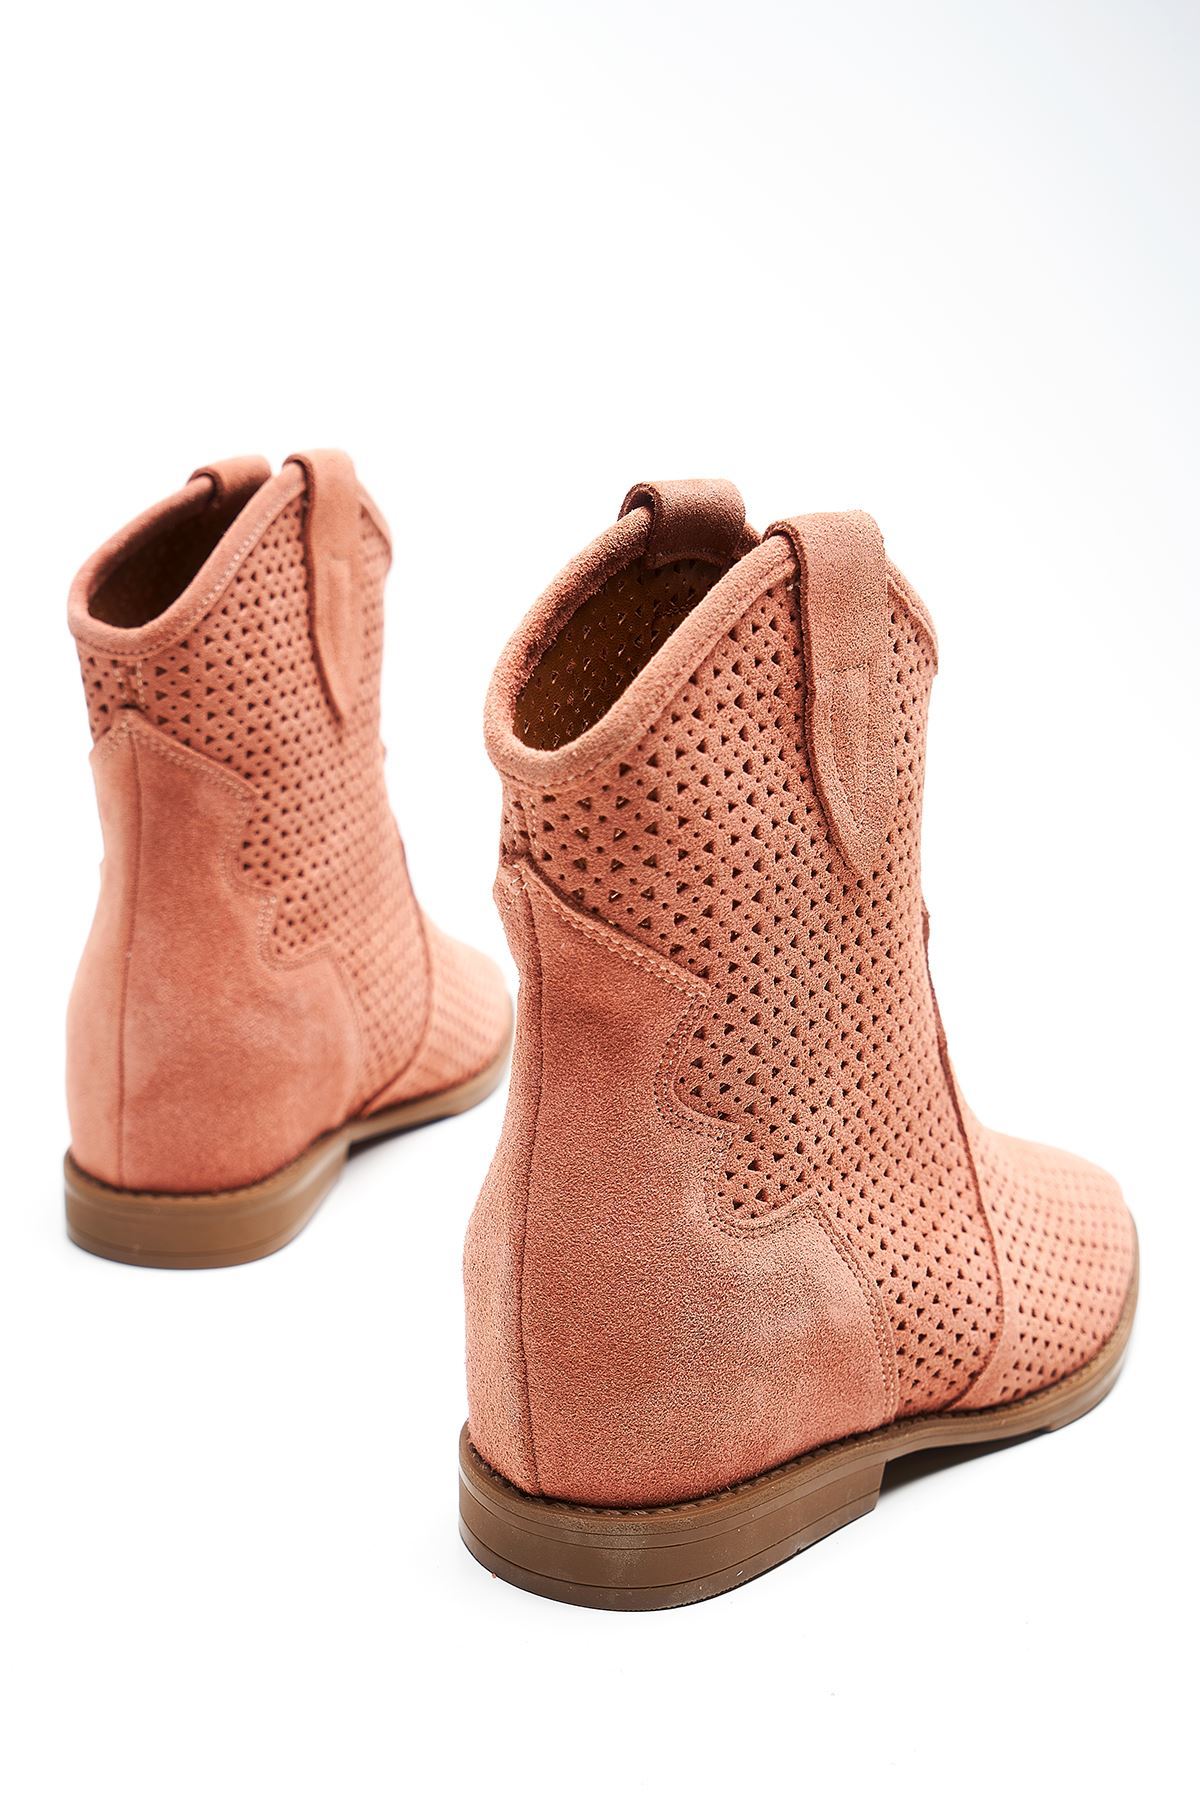 Storm Rose Genuine Leather Women's Summer Boots